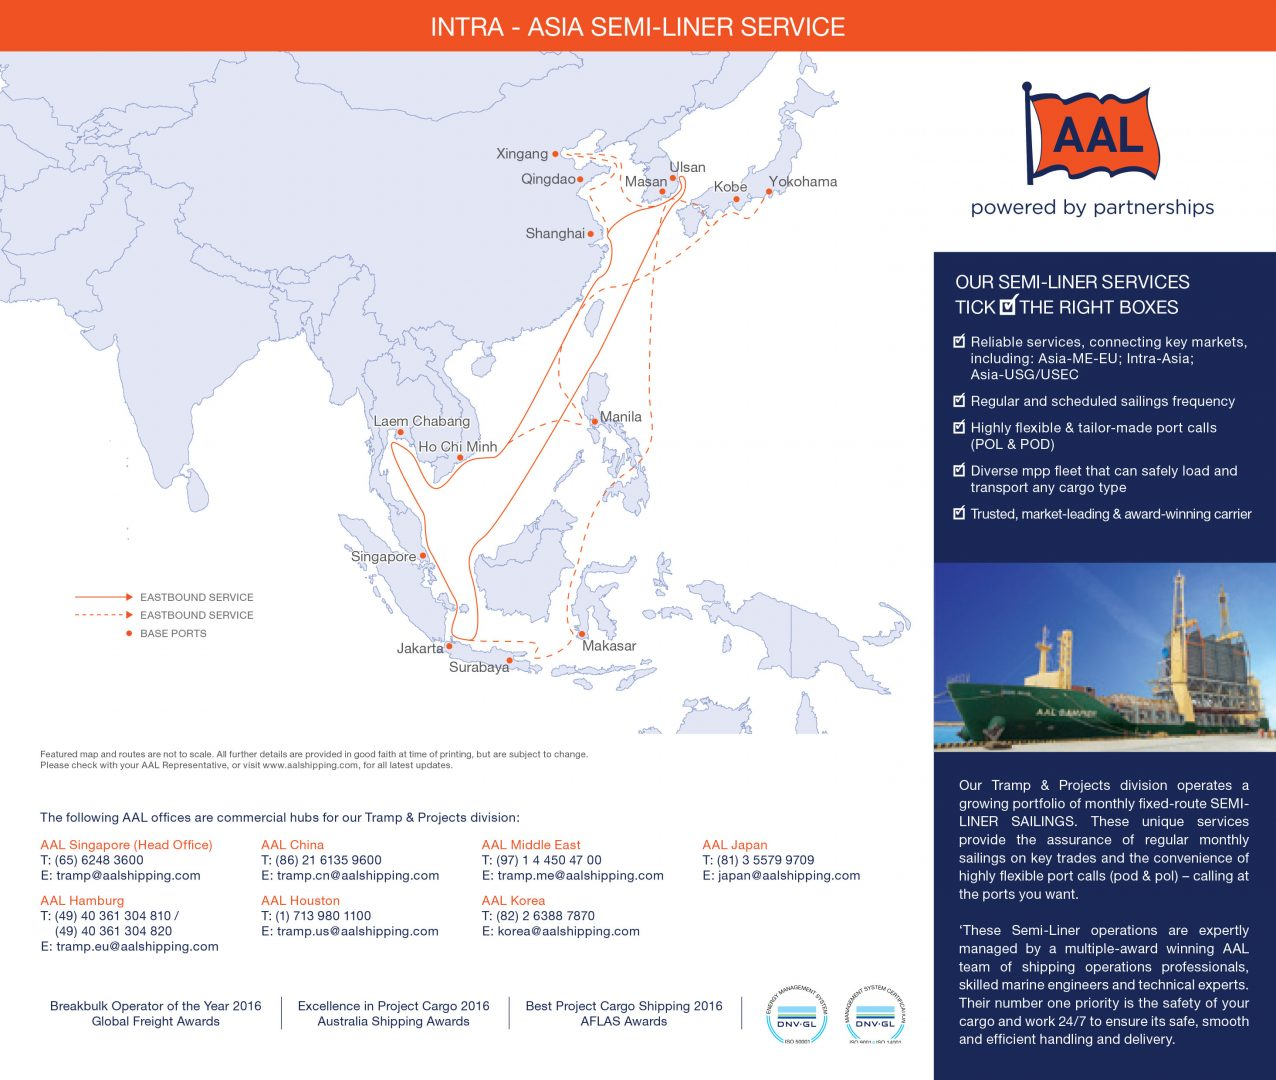 Intra - Asia Semi-Liner Service Route Map